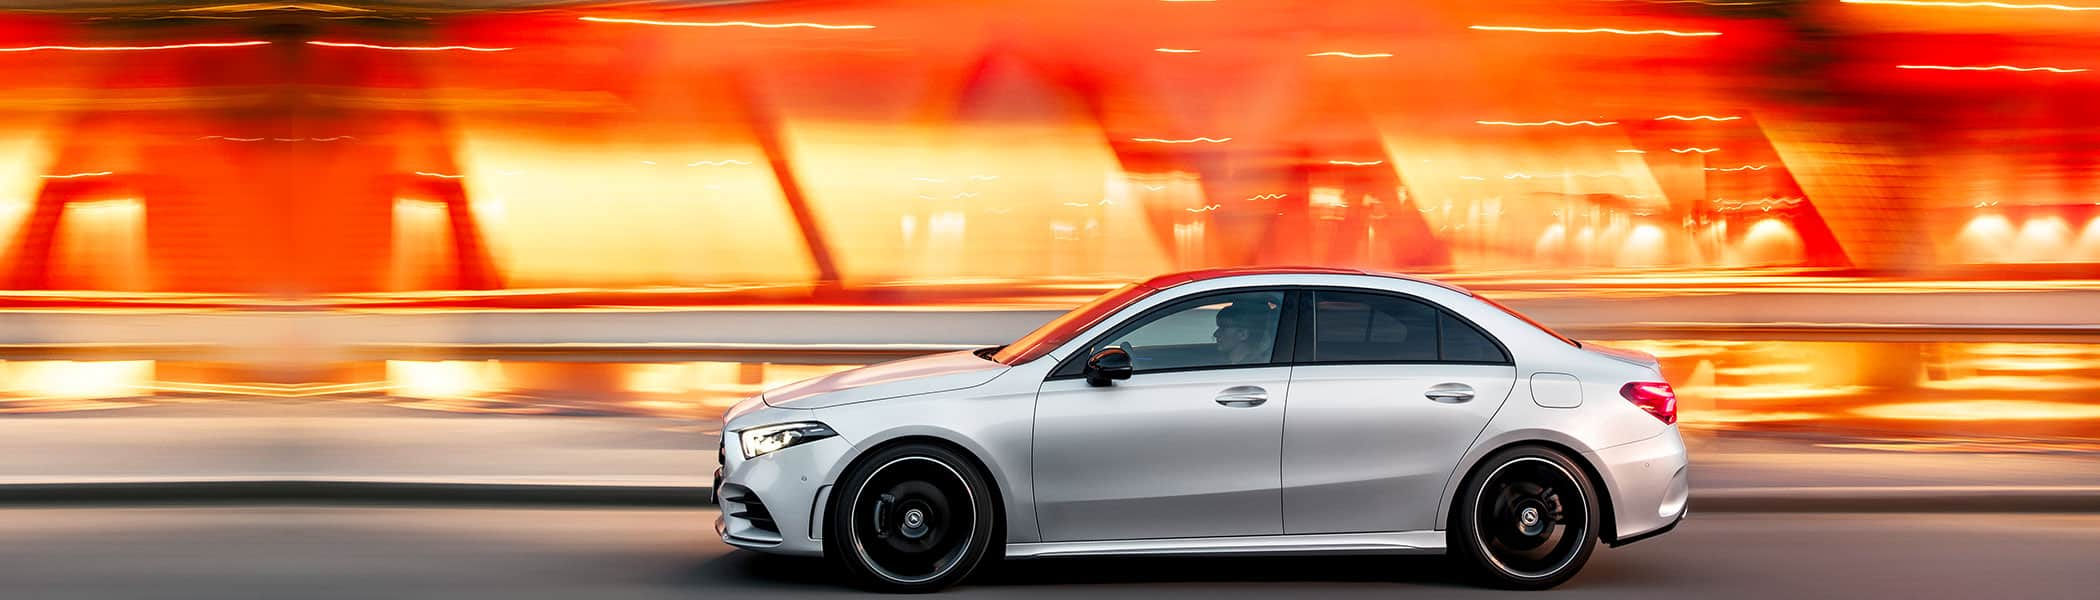 The new 2019 Mercedes-Benz A-Class Sedan